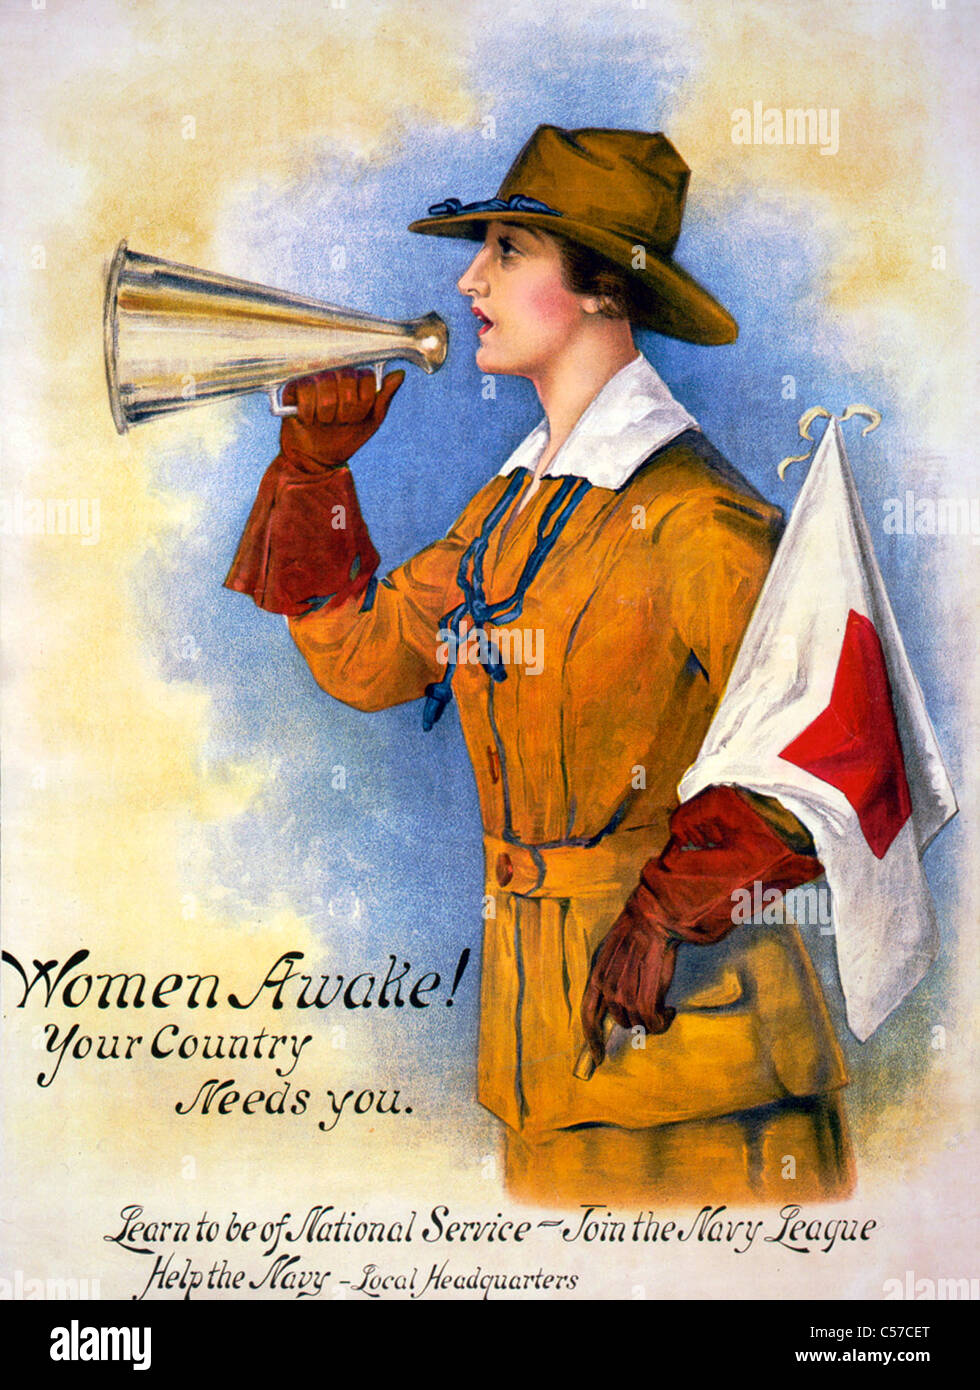 Your Country Needs You High Resolution Stock Photography And Images Alamy